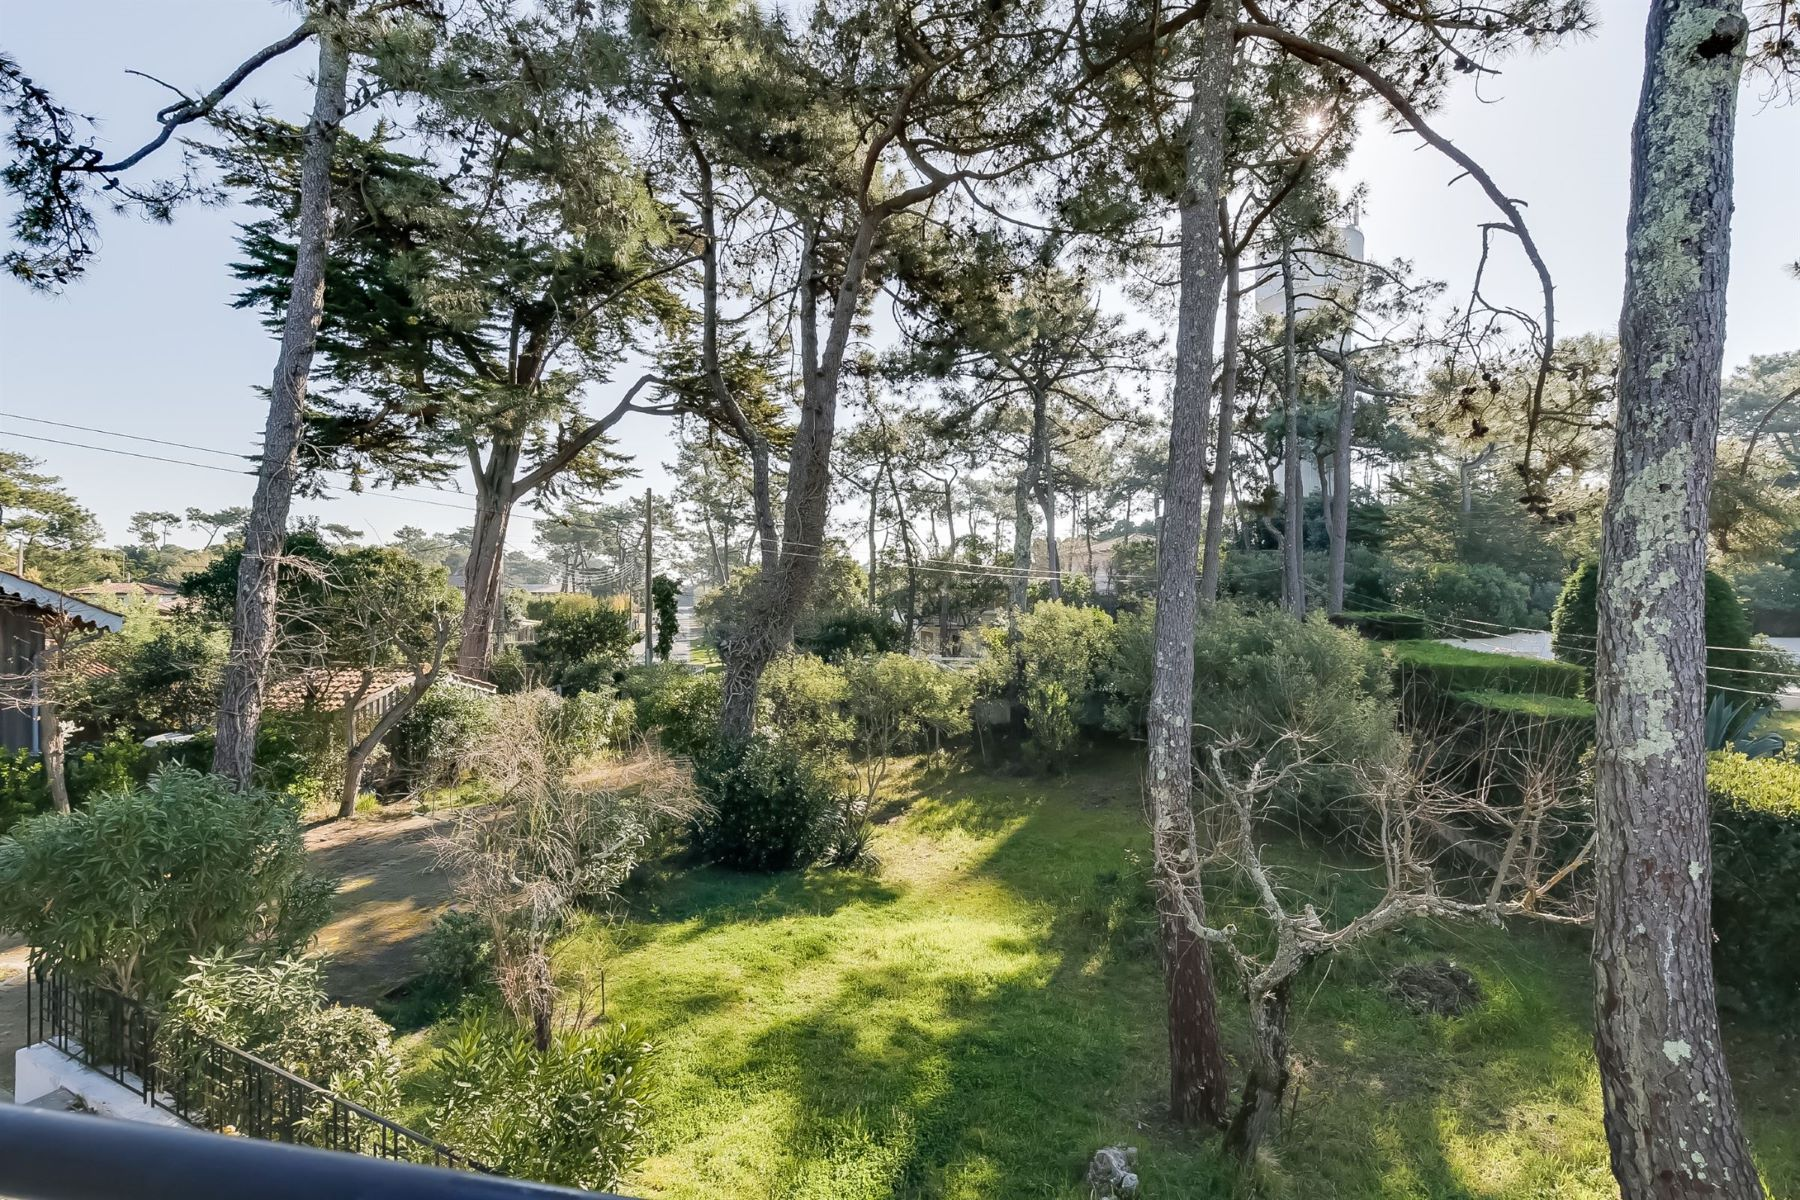 Single Family Homes for Sale at CAP FERRET - A STUNNING LOCATION FOR THIS VILLA - NEARBY THE MARKET PLACE Cap Ferret, Aquitaine 33970 France